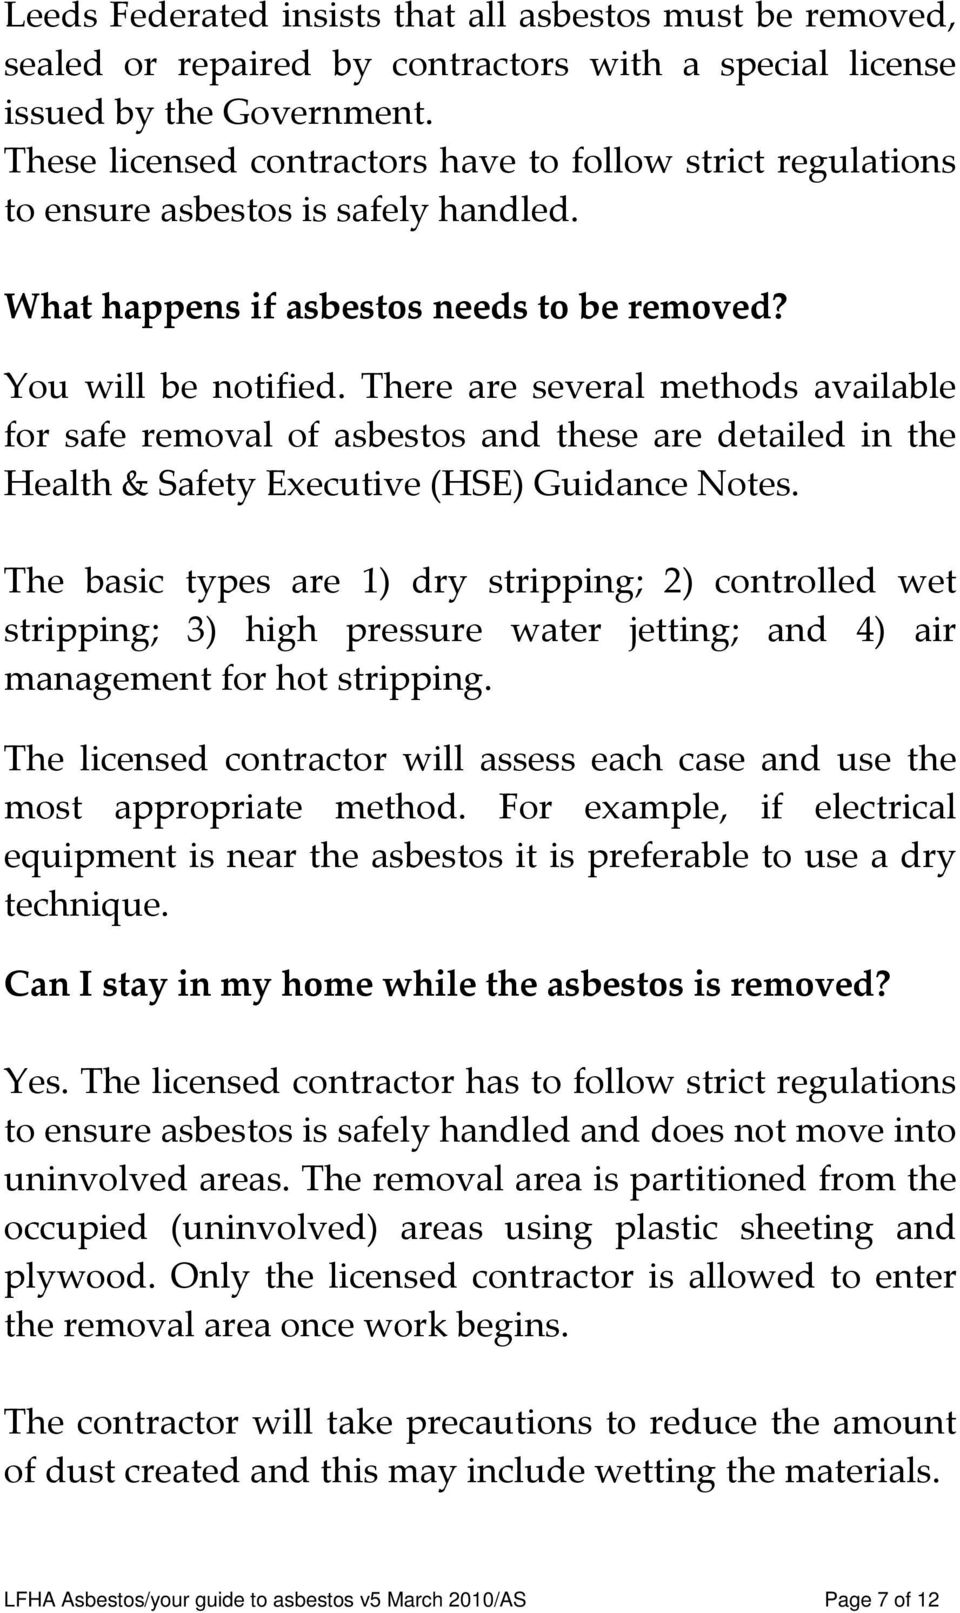 There are several methods available for safe removal of asbestos and these are detailed in the Health & Safety Executive (HSE) Guidance Notes.